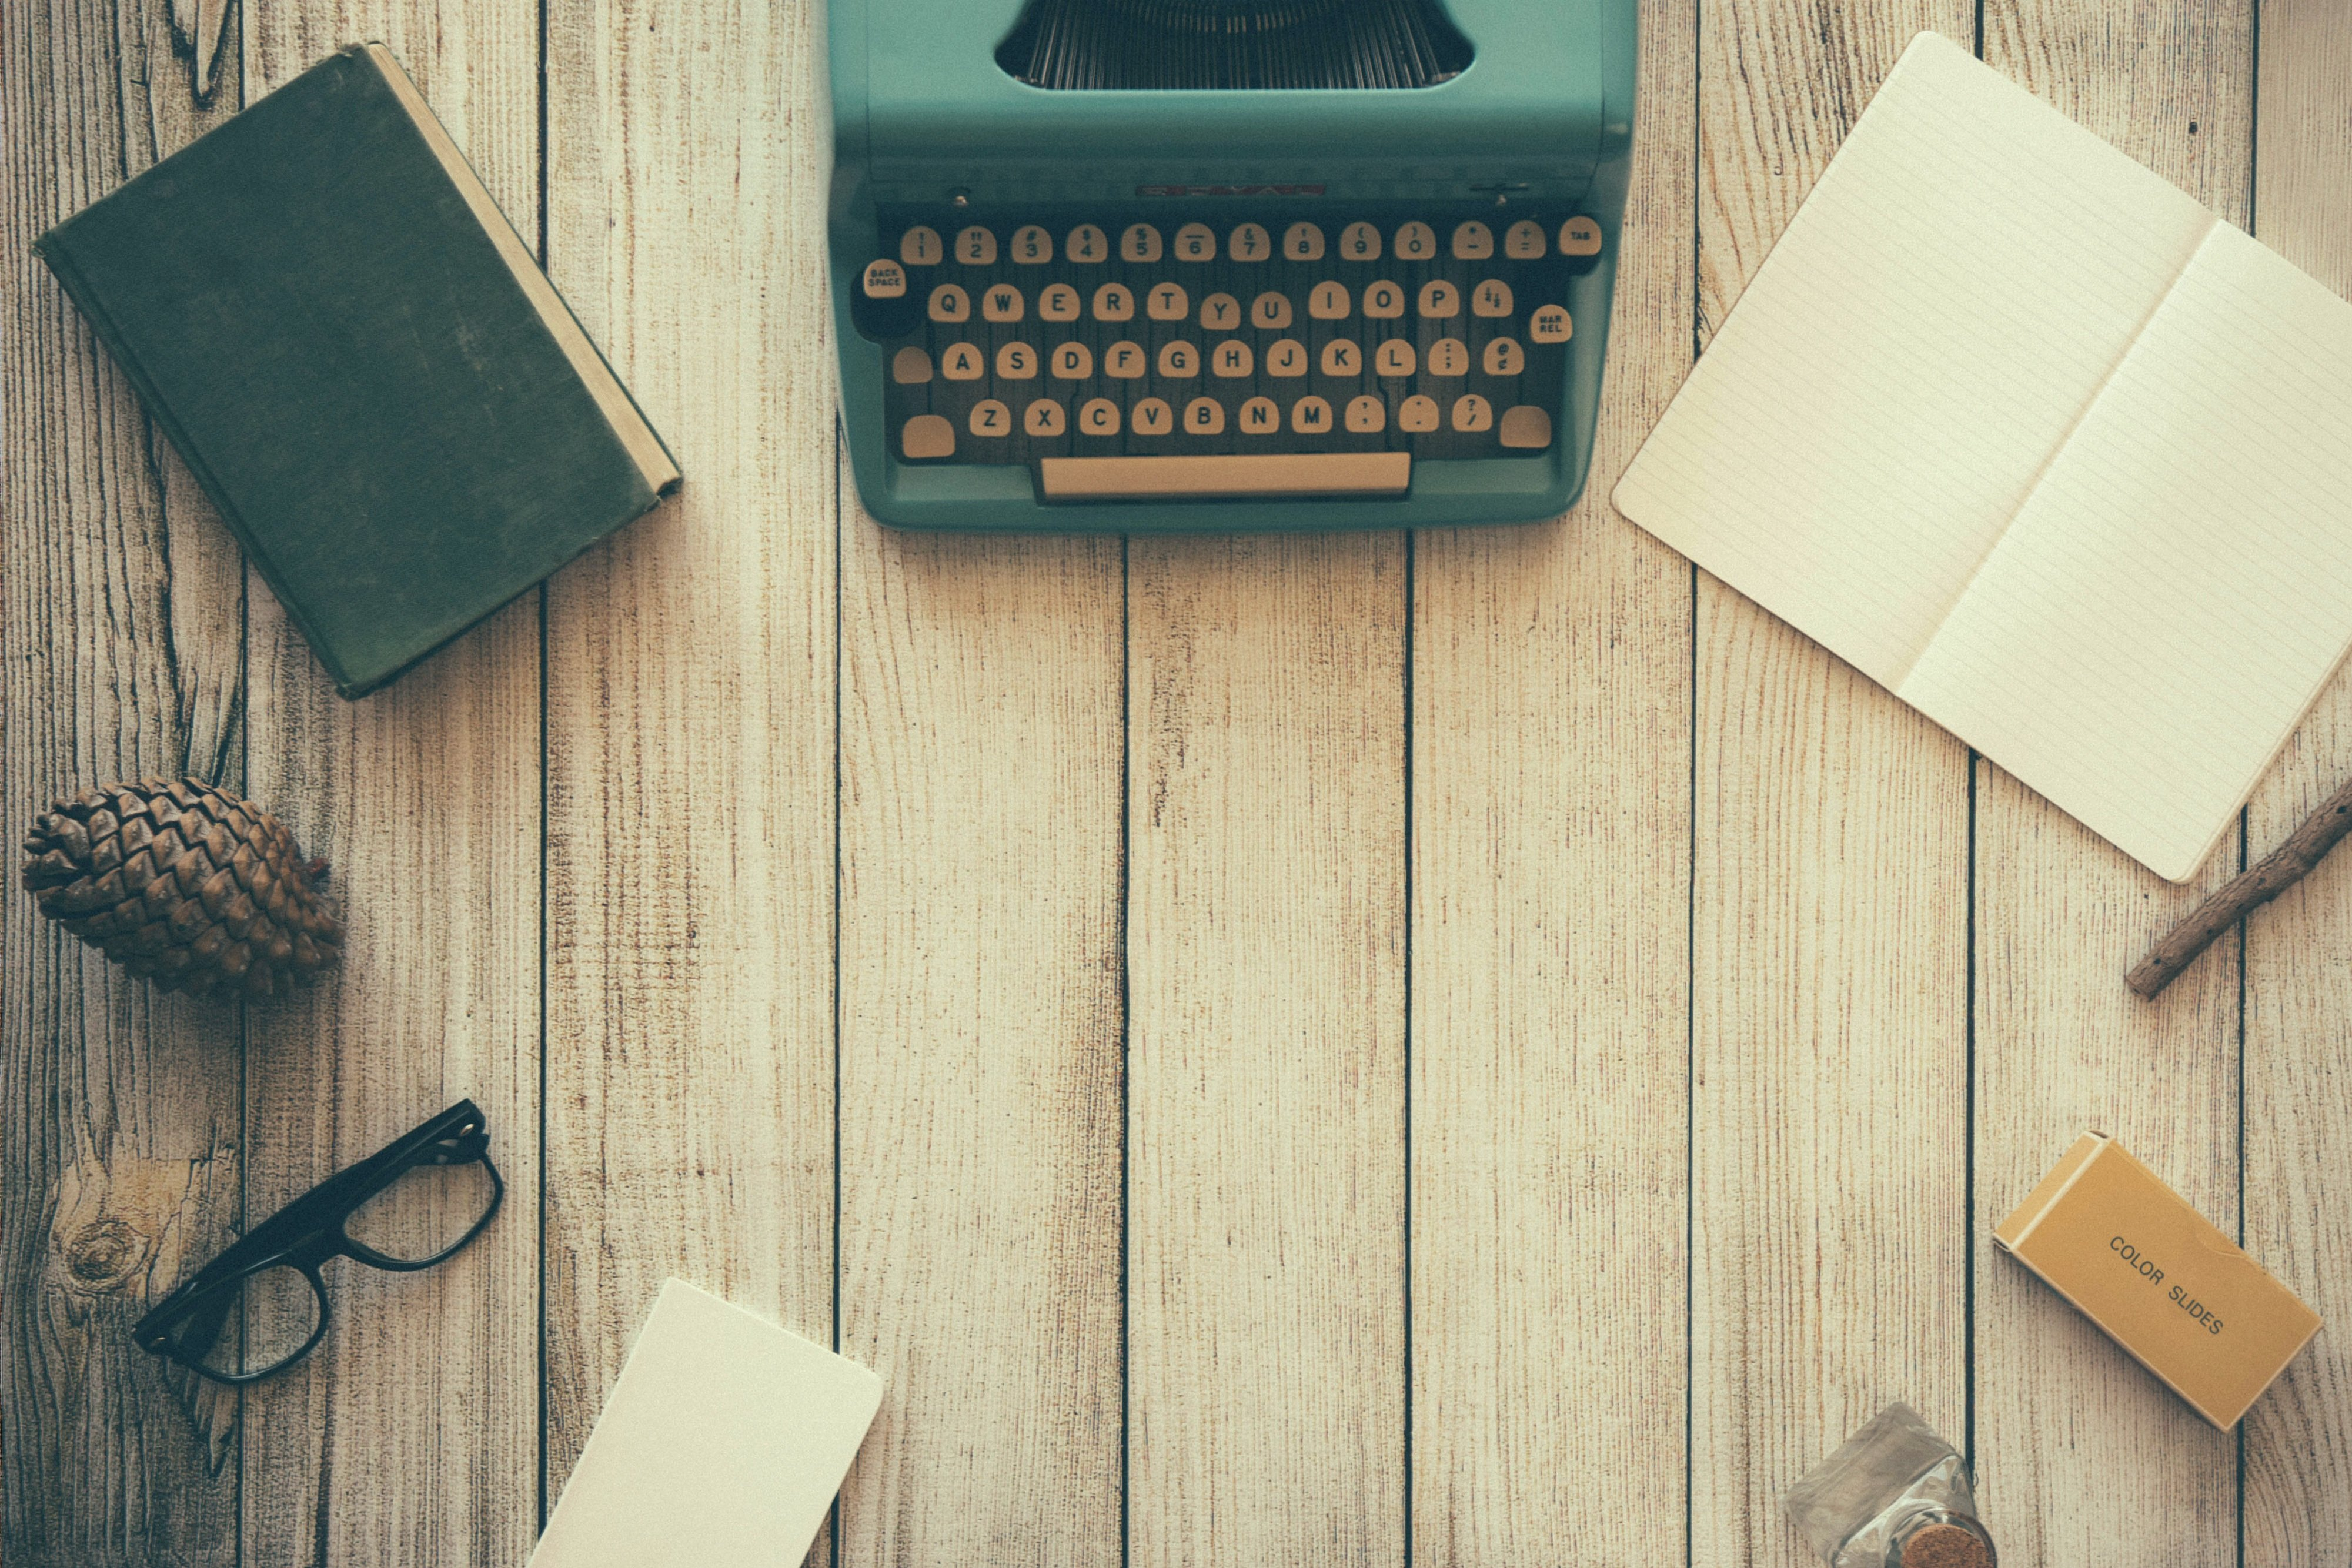 An image of a wooden tabletop from above. On the table lay a blue typewriter, an open empty notebook, a box of film slides, a pair of glasses, an old book, and a pinecone.